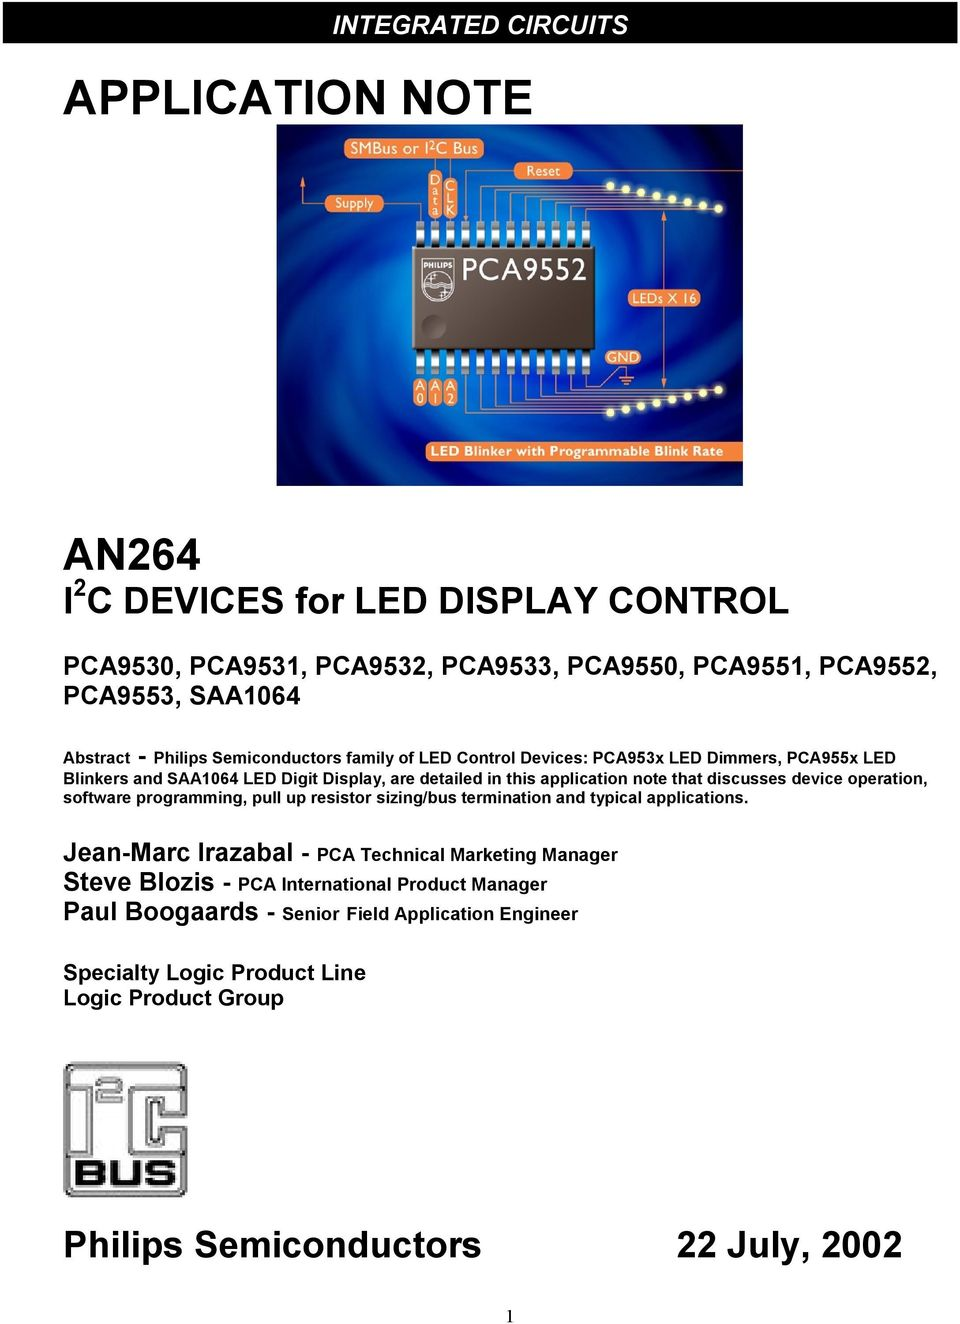 Integrated Circuits Pca9530 Pca9531 Pca9532 Pca9533 Pca9550 Circuit Calculator Led Resistor Calculation Equalizer Discusses Device Operation Software Programming Pull Up Sizing Bus Termination And Typical